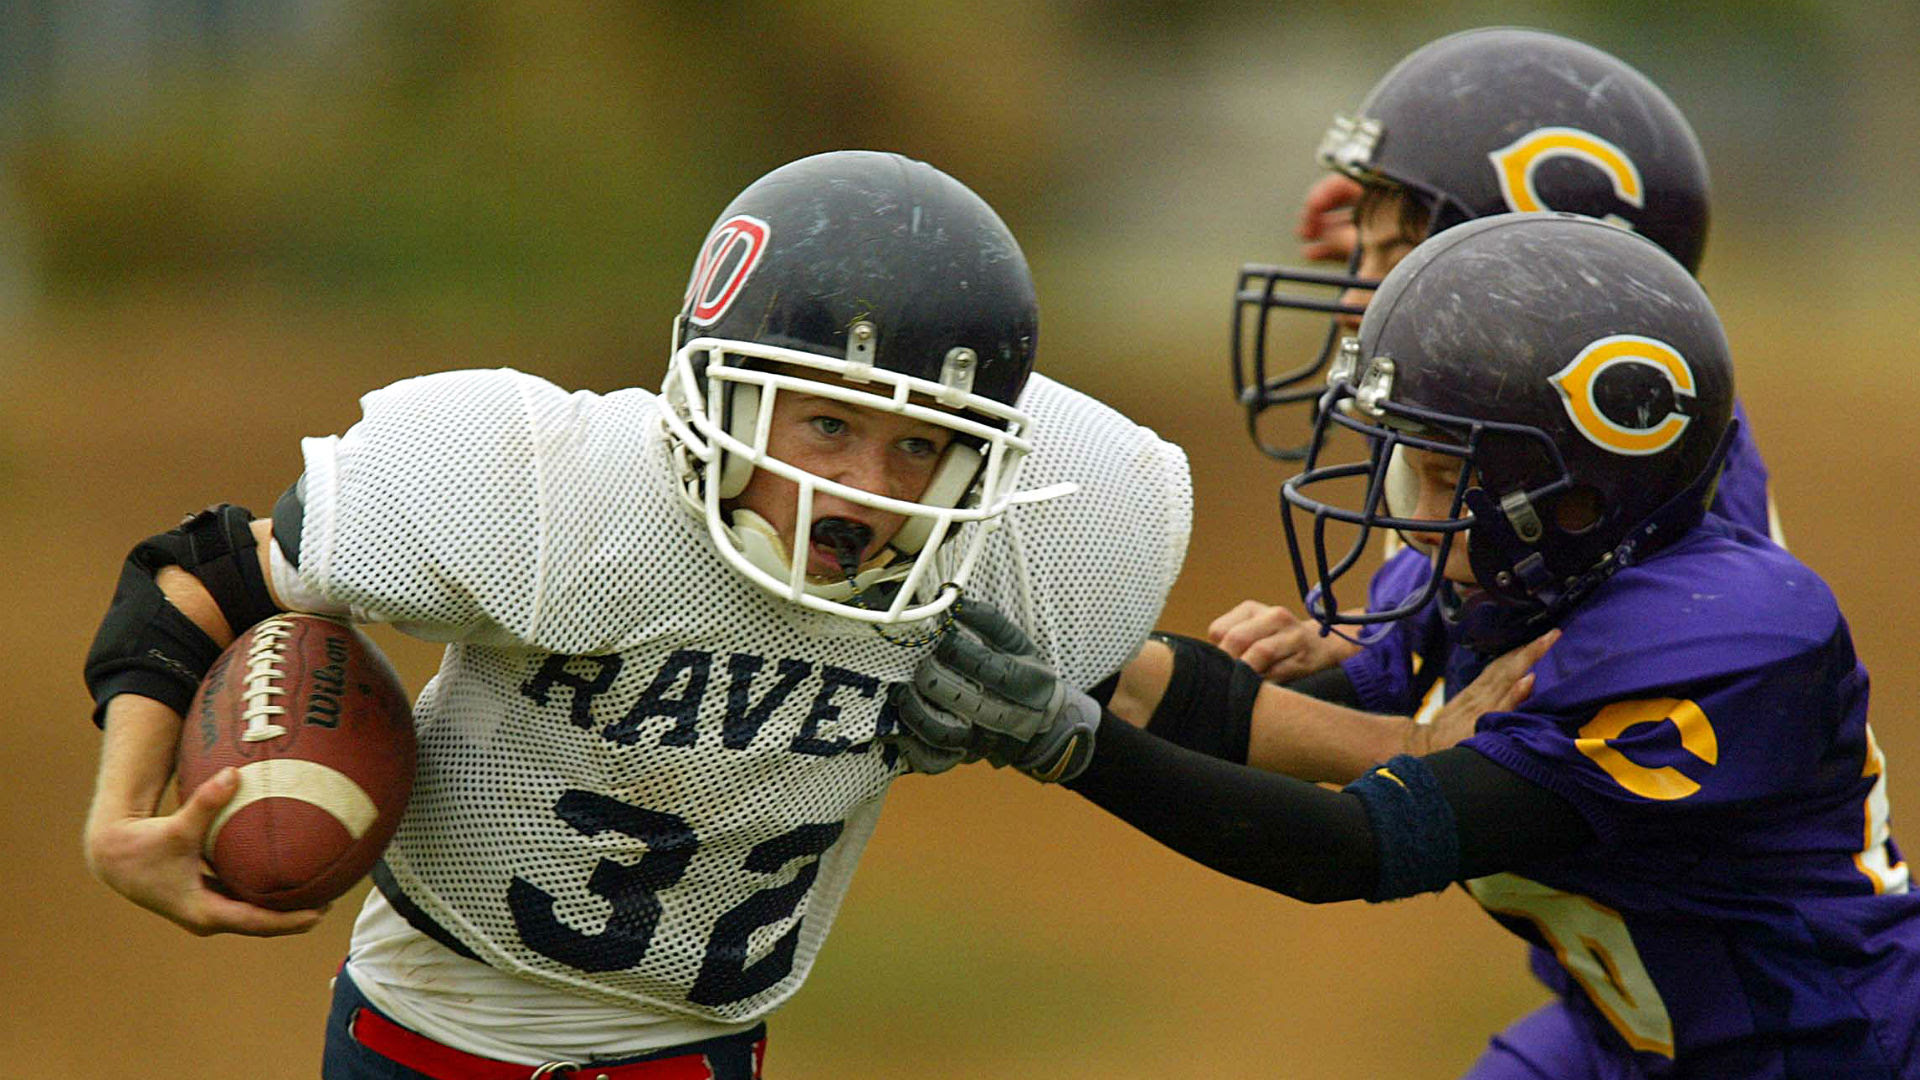 NFLbacked program not making youth football any safer, report says  NFL  Sporting News